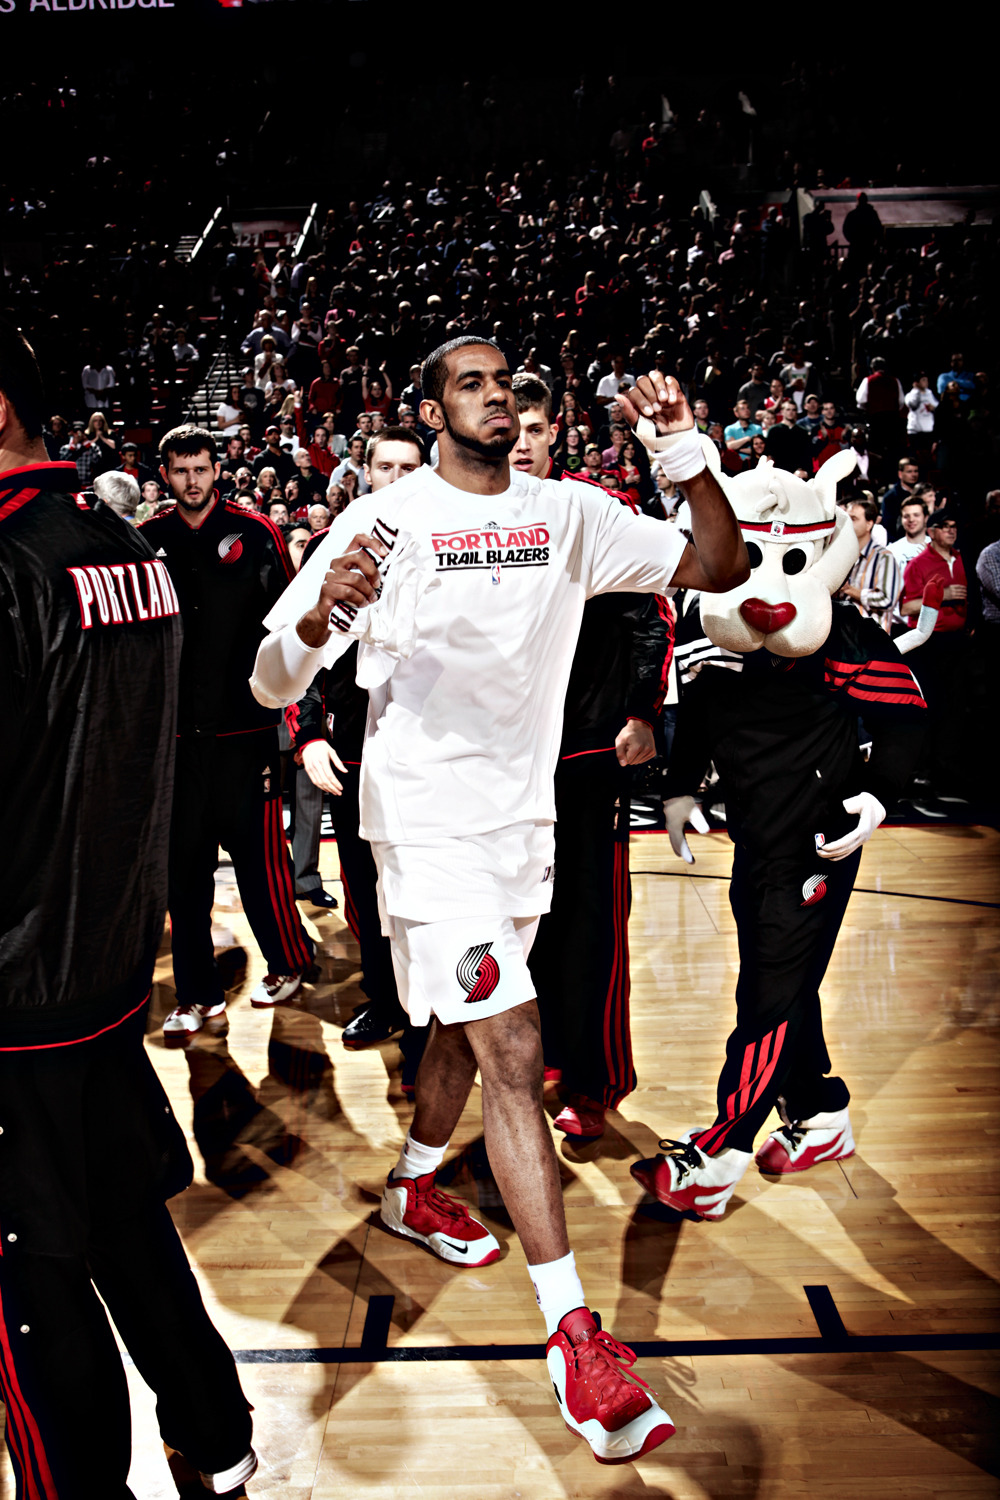 trailblazers:  LaMarcus Aldridge's Ever Expanding Offensive Repertoire  For the last two seasons, Aldridge spent 49.6 percent and 49 percent of his possessions in the post, whether finishing or passing the ball out according to Synergy Sports Technology. This past season Aldridge was in the post on only 39.6 percent of his possessions whether passing or shooting, ranking fifth in the league in points per possession on such plays, among players who did so on at least 300 possessions. It's still far and away the biggest part of his game, but how he's becoming a more useful player than just one who can score and pass out of a double-team in the post and hit a jumper on a pick and pop. Aldridge's use in pick and rolls and pick and pops has been the obvious uptick as he and Damian Lillard have formed a fantastic duo. Aldridge has also become more comfortable making moves off the moves, such as taking a dribble to get a shot off a pick and pop rather than just taking the jumper, which teams aren't letting him just get with ease anymore.  According to Synergy, 23 percent of Aldridge's jumpers in pick and pop plays came off the dribble. In 2010-2011, it was six percent and during the lockout shortened season it was 13.8 percent. Now, he's doing it more and improved his efficiency on those shots by .18 points per possession, a notable and encouraging increase. His dribble moves are more precise, quicker and effective.